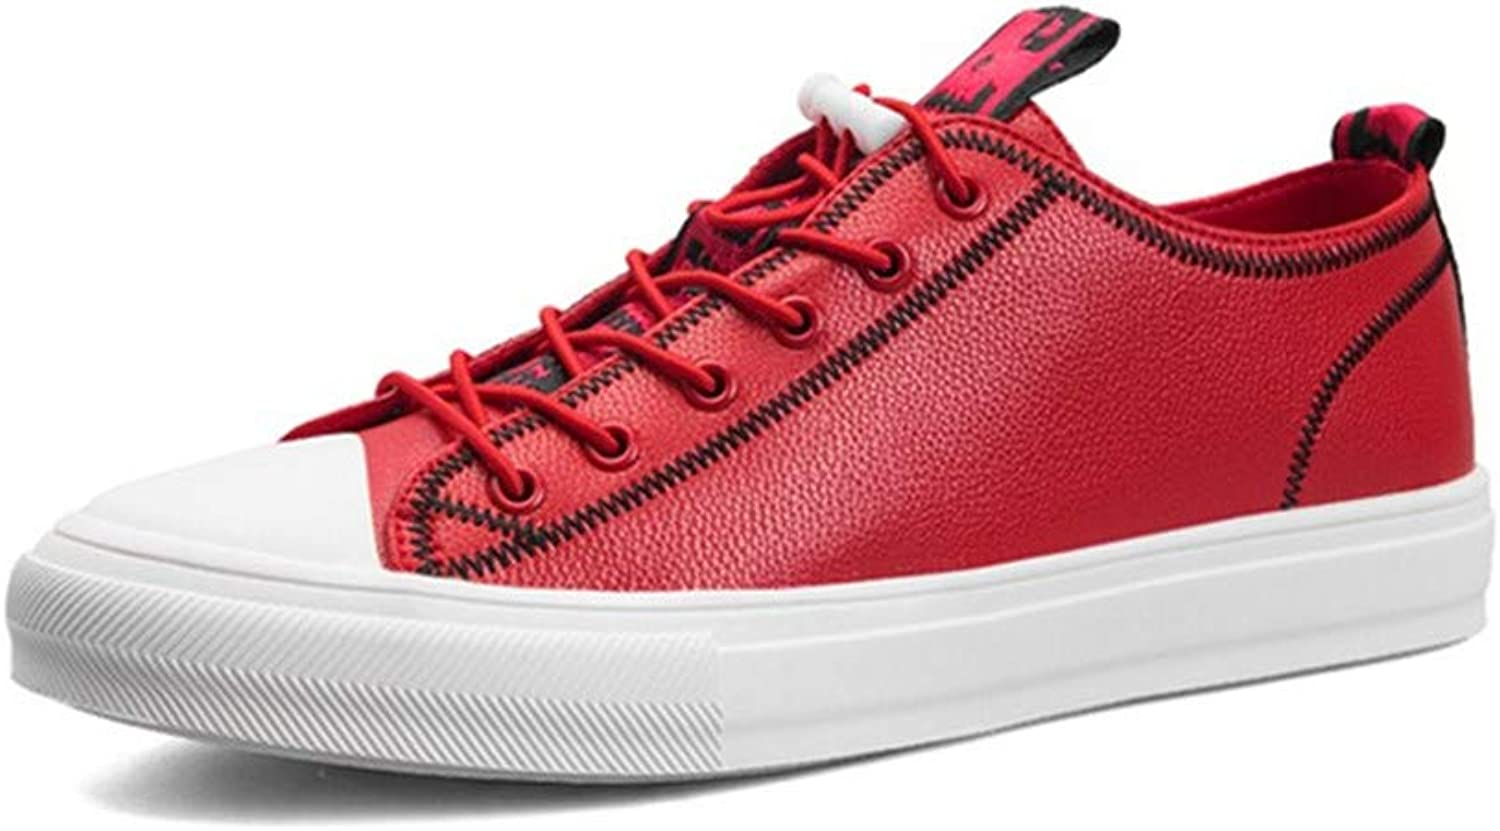 Casual Men's shoes Microfiber Red Four Seasons Can Wear Board shoes Leisure